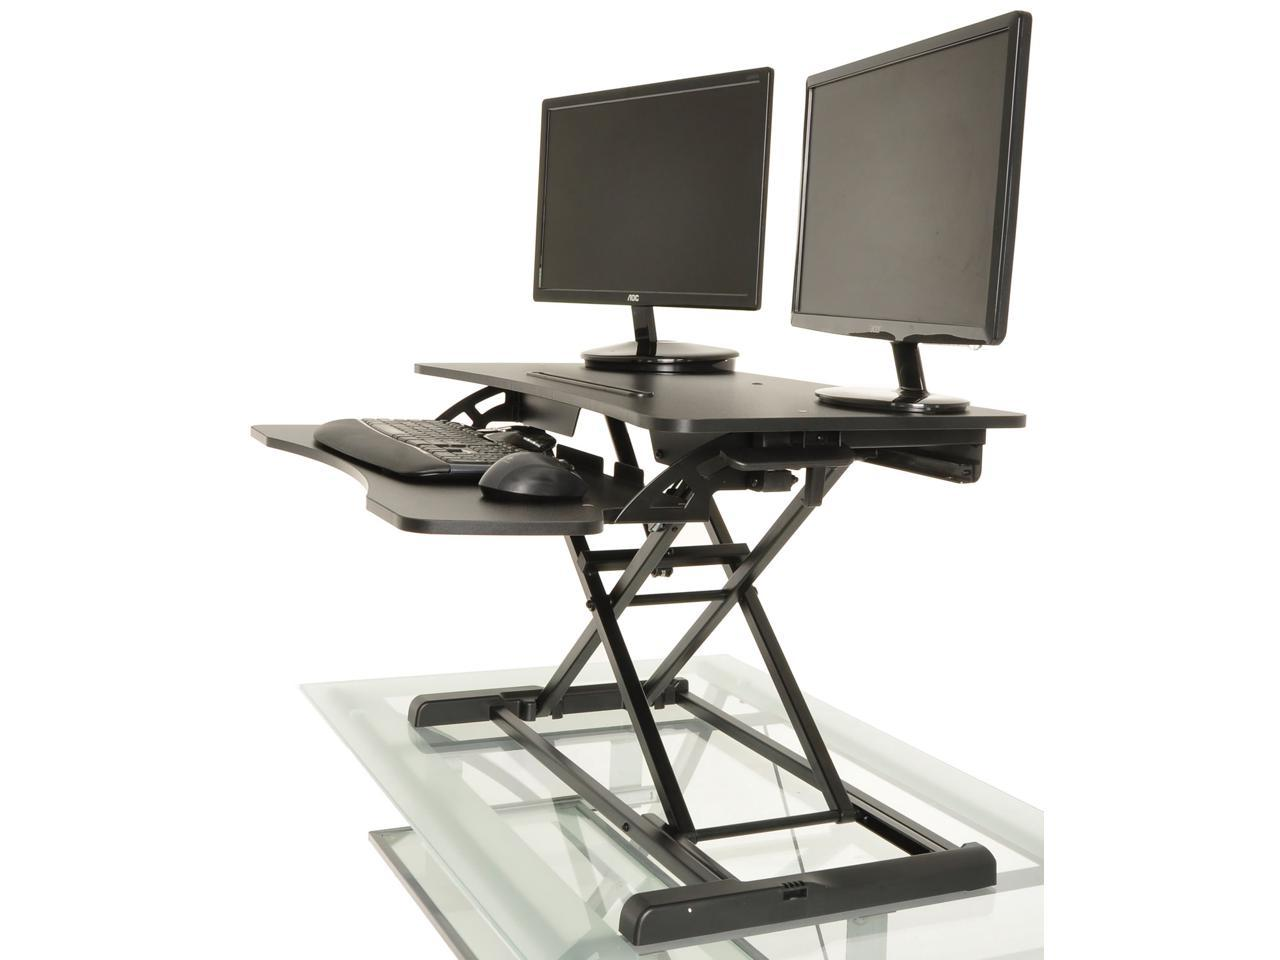 "Conquer 31.5"" Adjustable Standing Desk Monitor Riser Gas Spring Tabletop Sit to Stand Workstation"